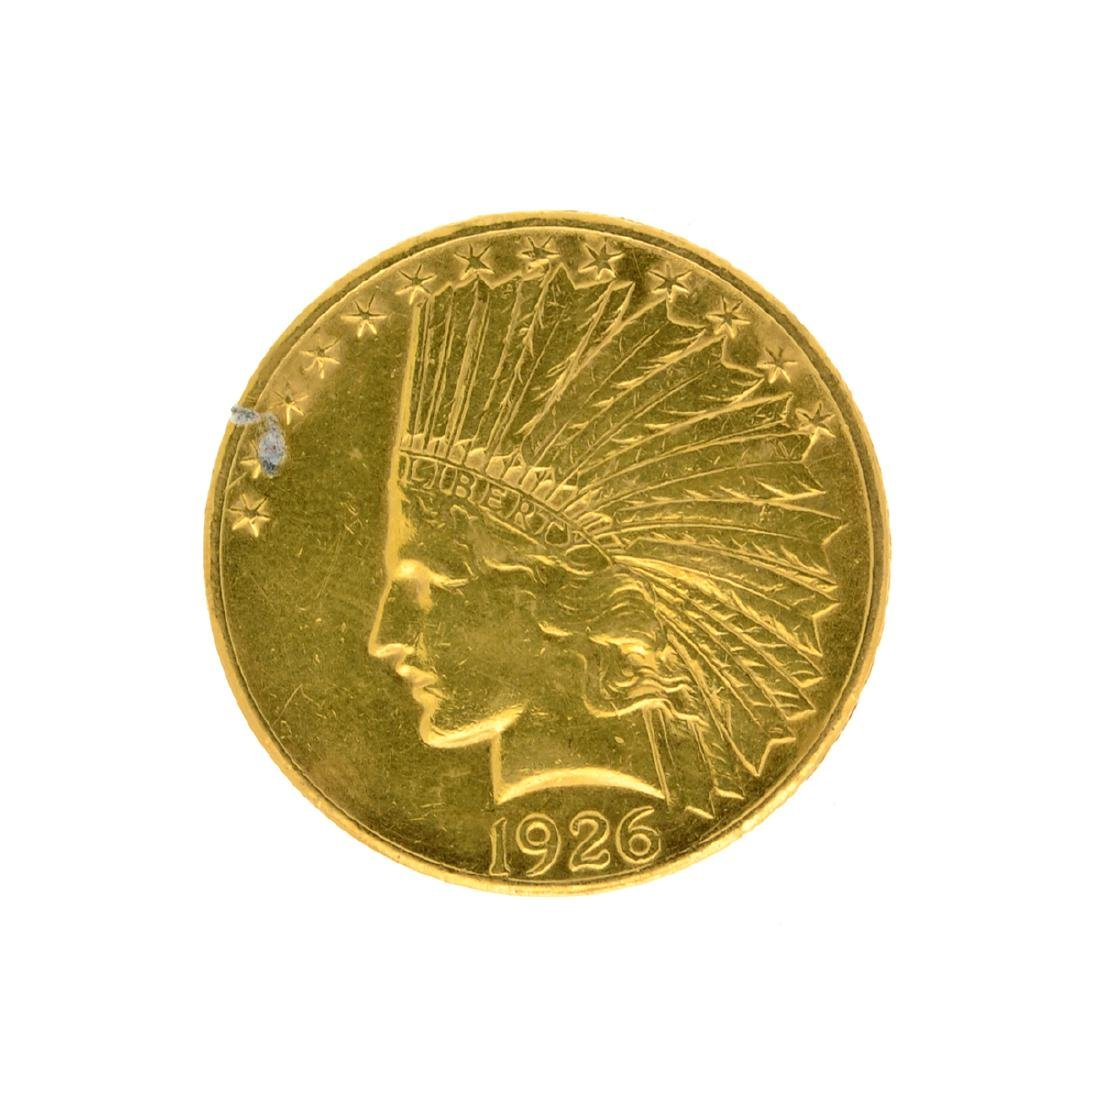 1926 $10 U.S. Indian Head Gold Coin